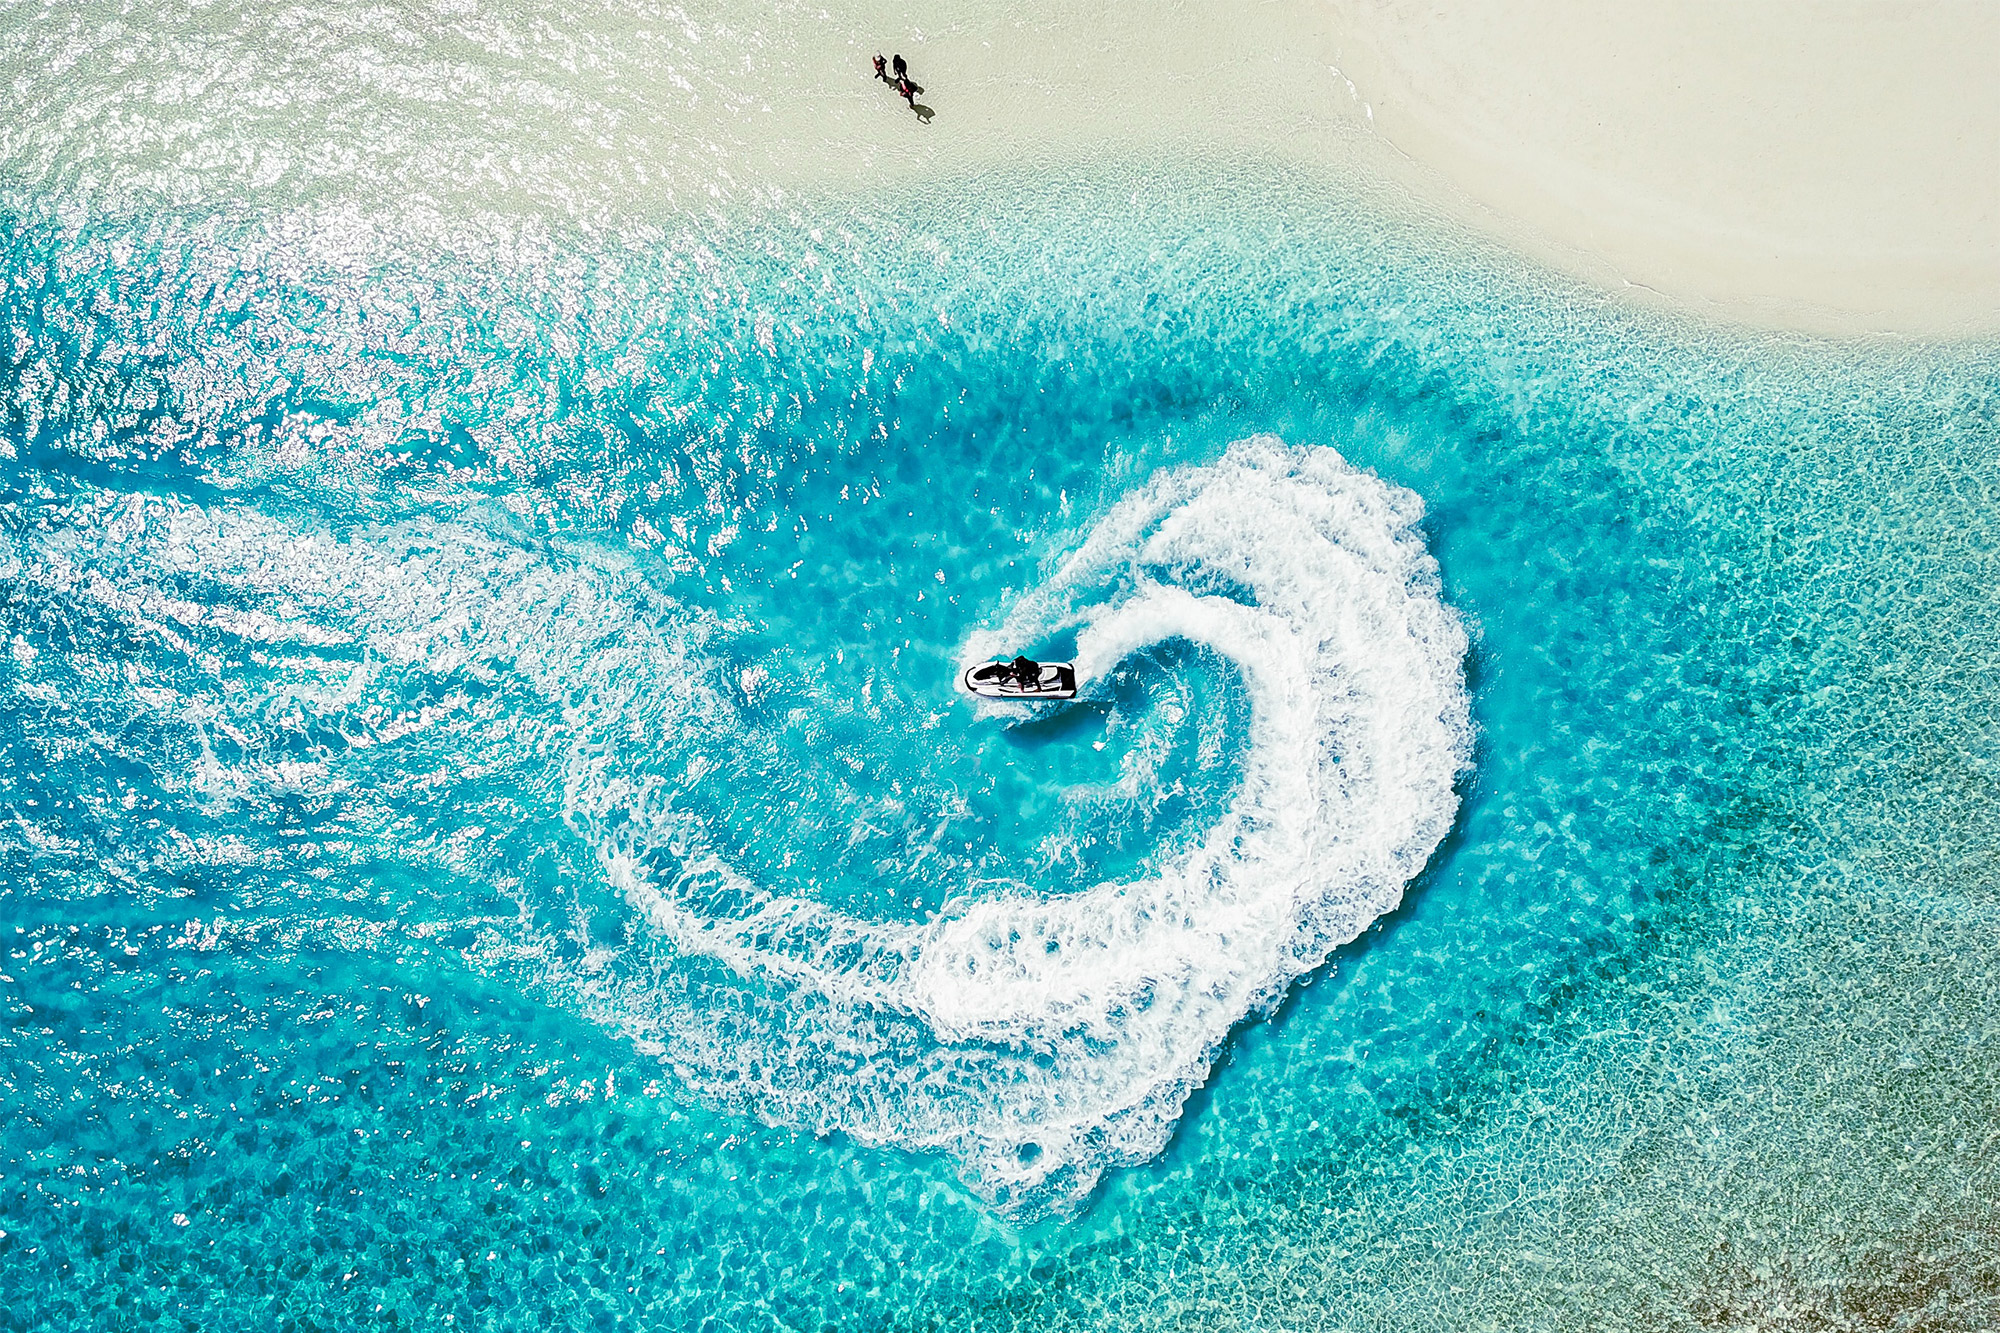 Jet ski zooming around in turquoise sea creating waves.